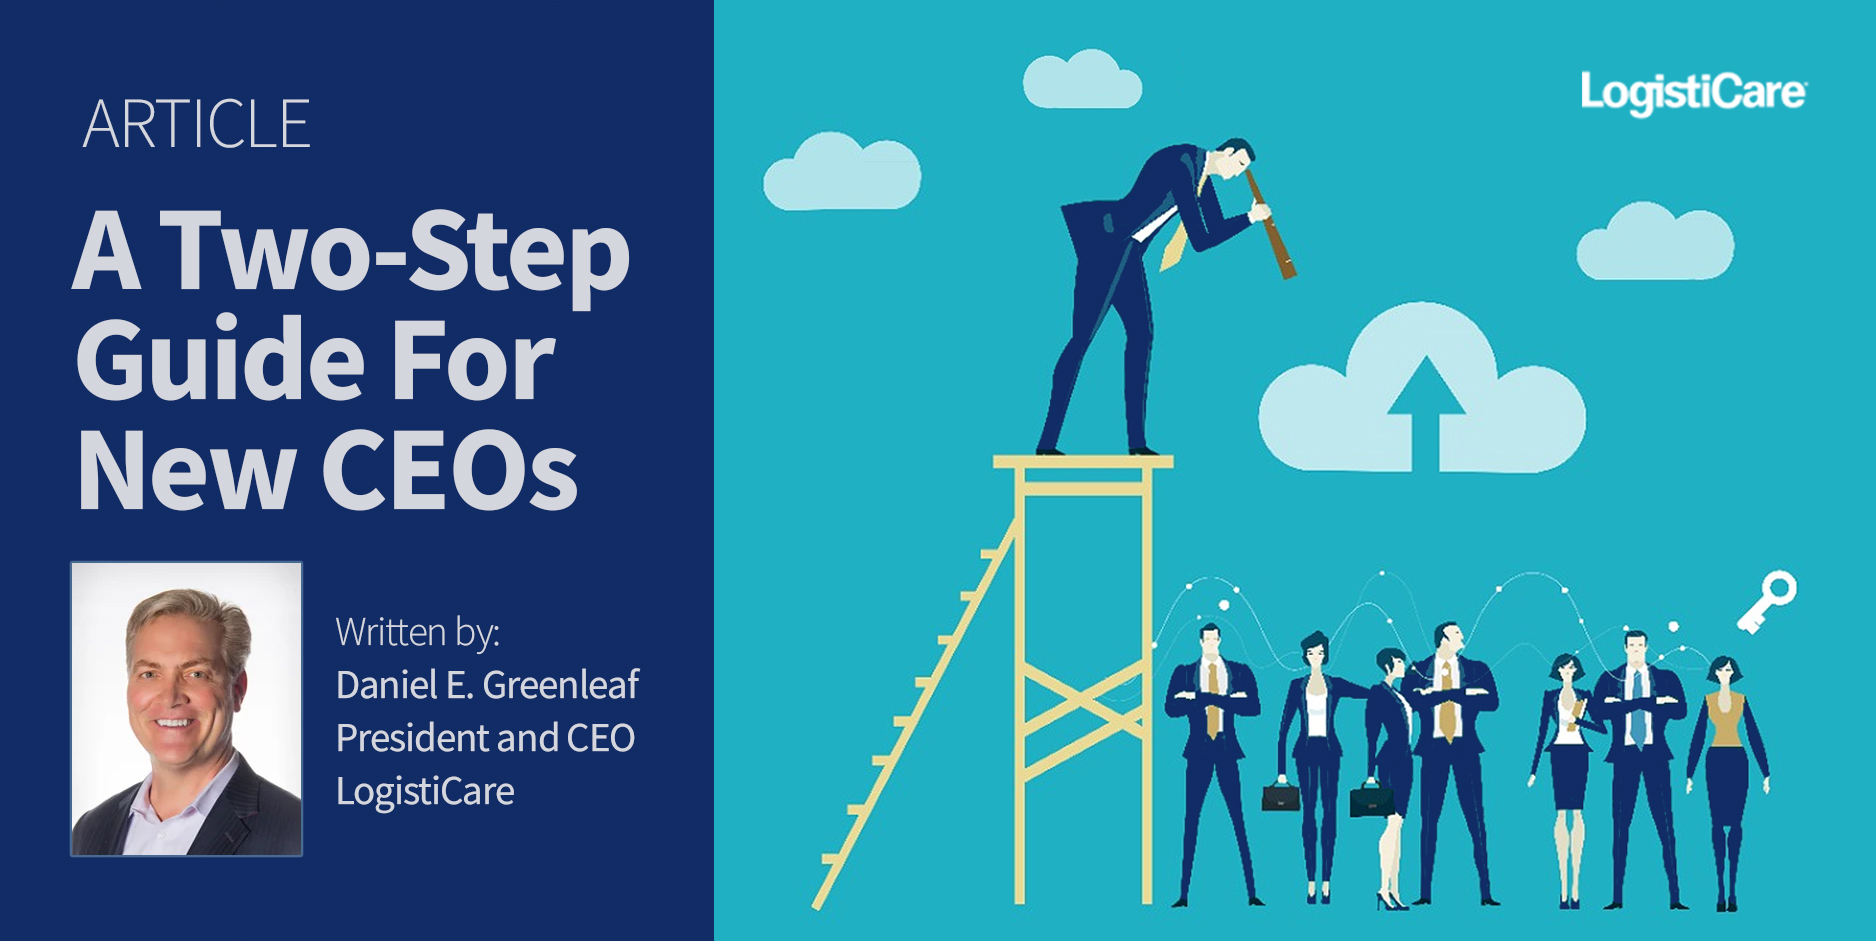 Two-Step Guide For New CEOs-06-24-2020_FINAL